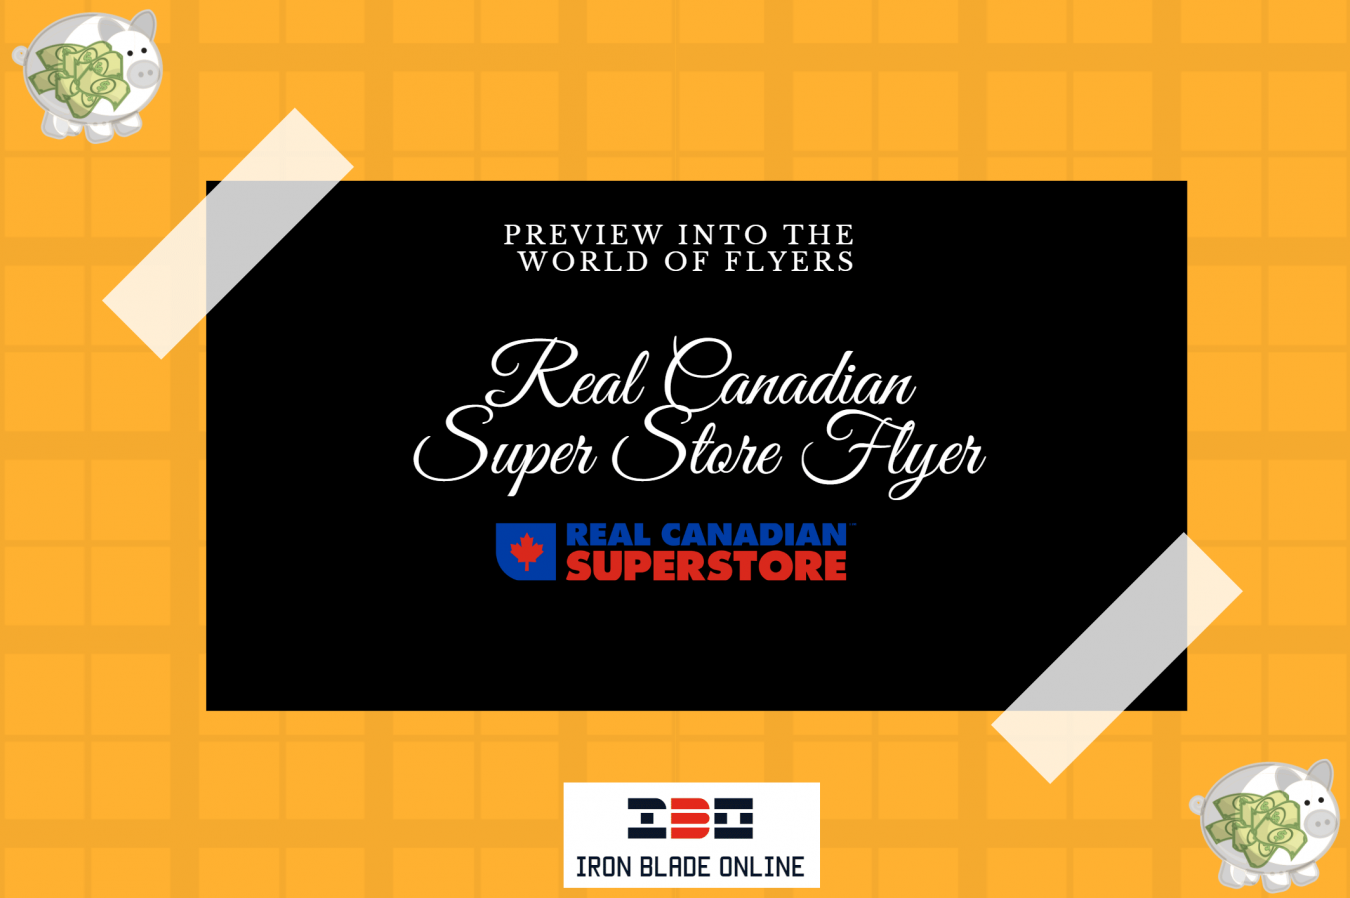 Real Canadian Superstore Flyers January 2021 Latest Offers Live✔️